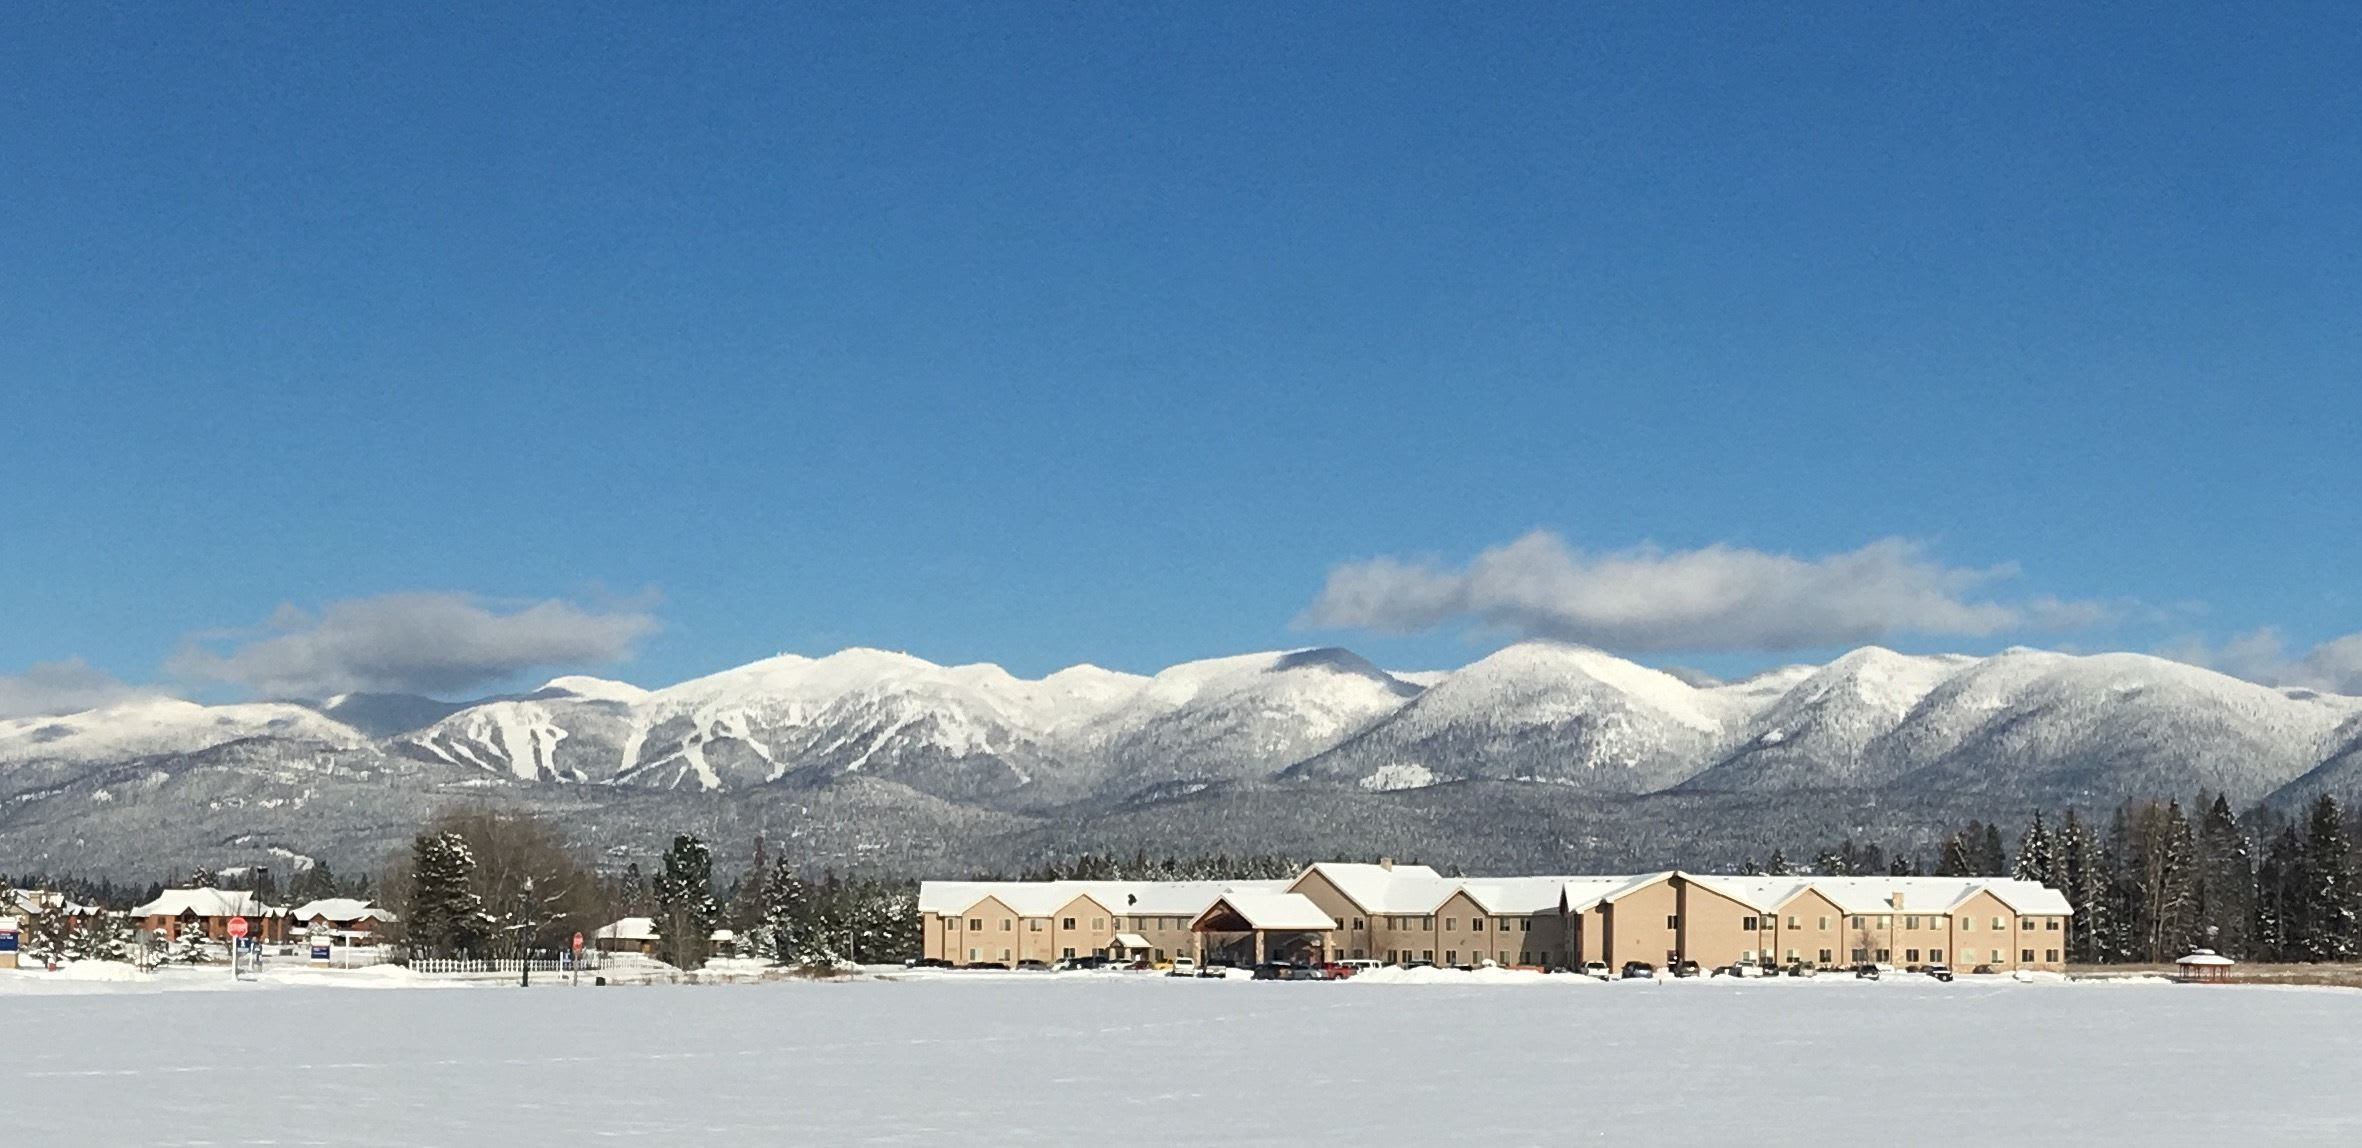 The snowy landscape of our senior living facility in Whitefish, MT